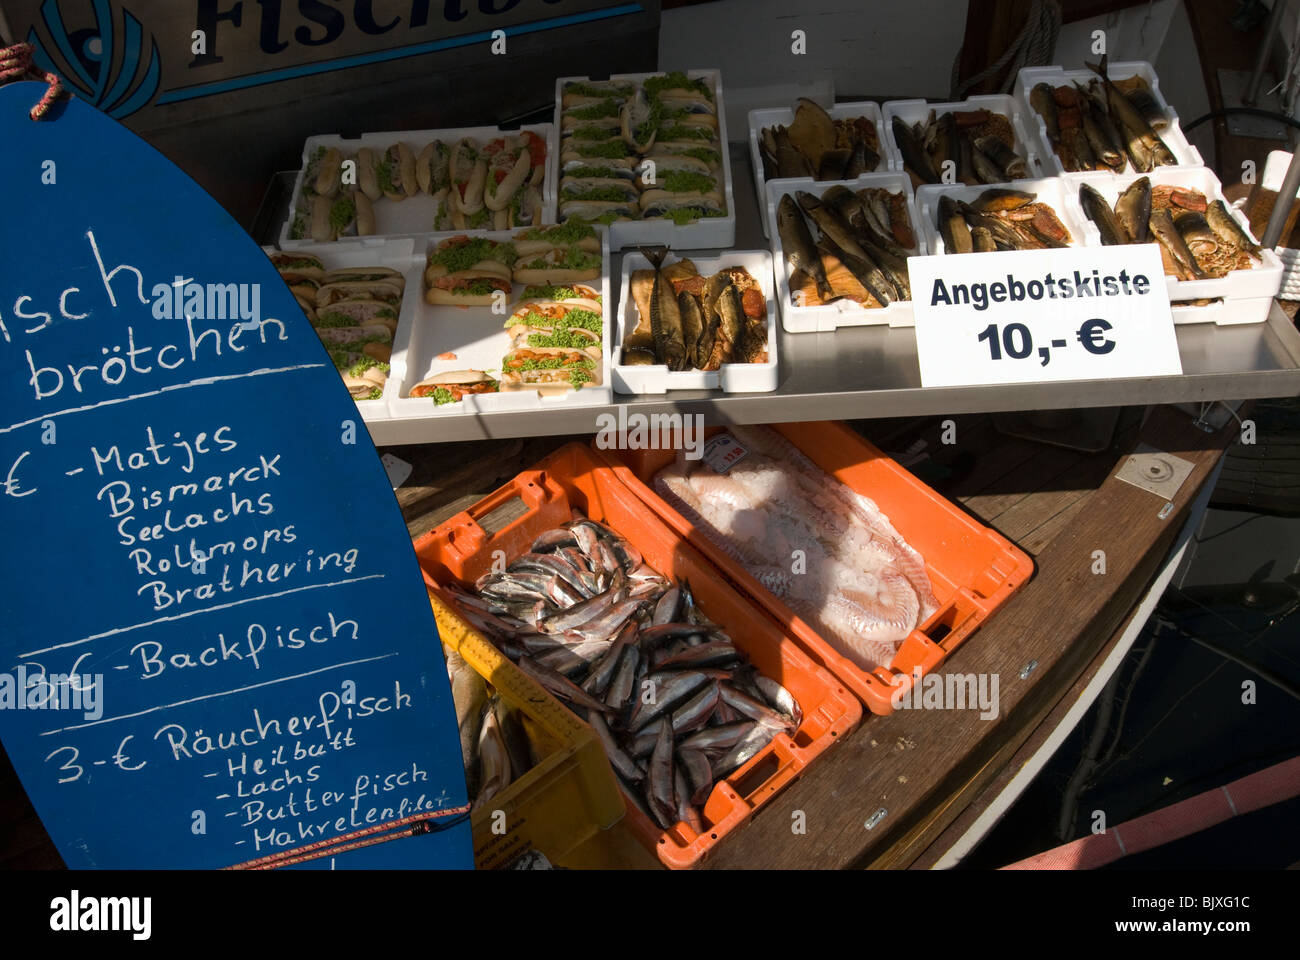 Fish selling in the olp port of in Wismar, Mecklenburg-Western Pomerania, Germany. - Stock Image